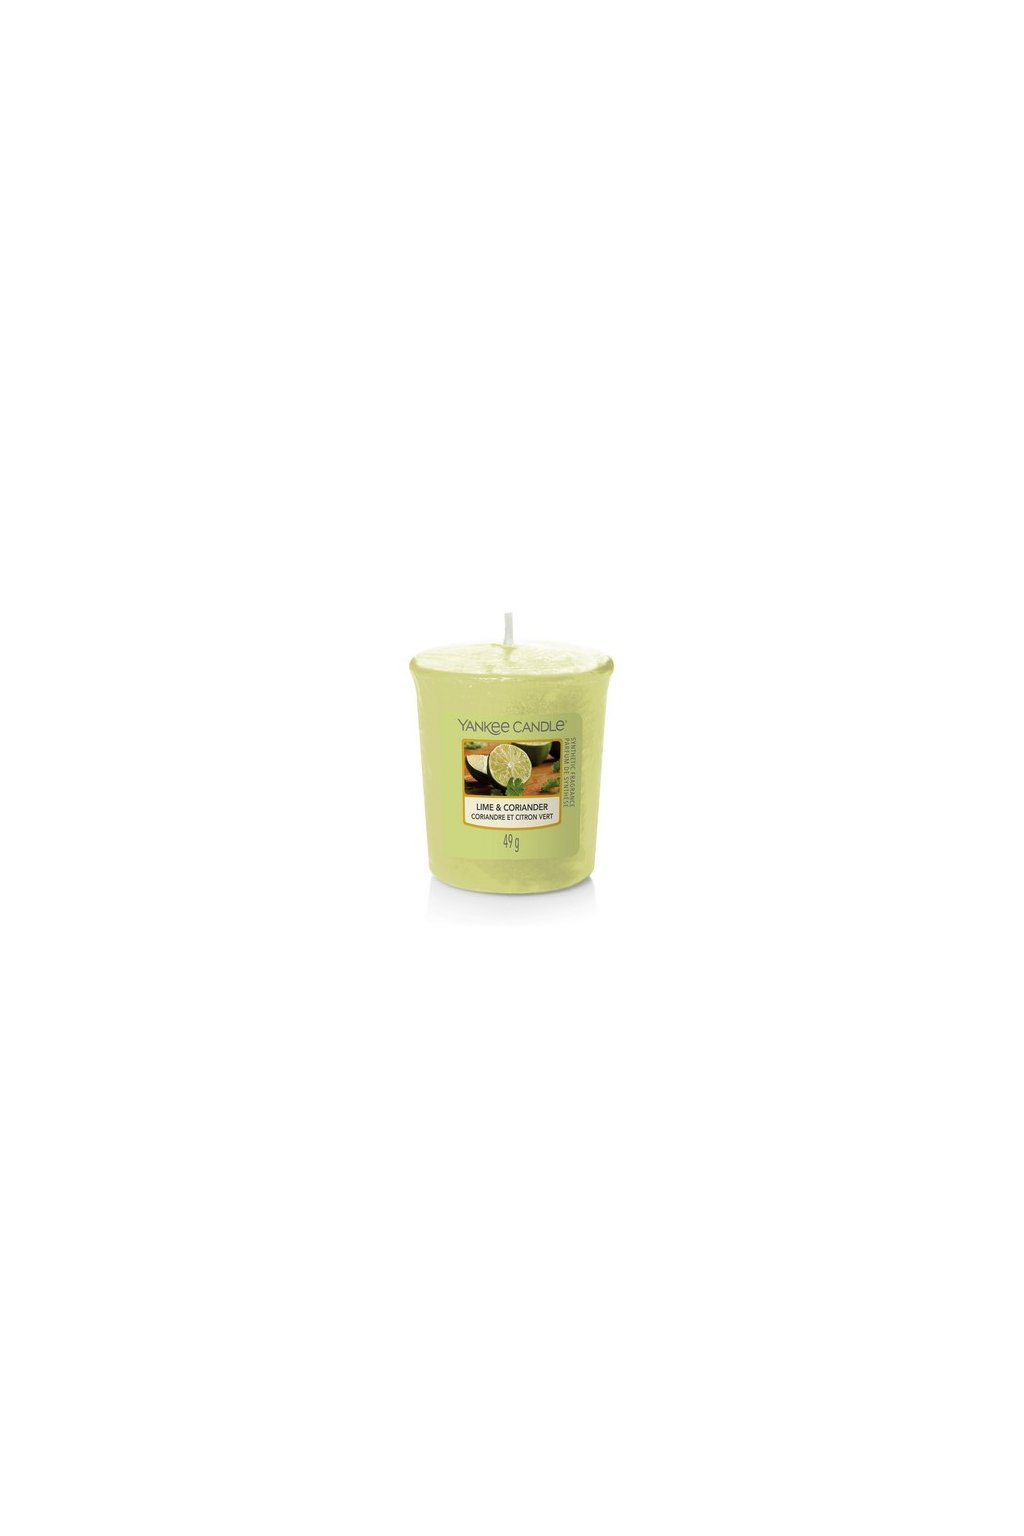 Yankee Candle Lime & Coriander 49g